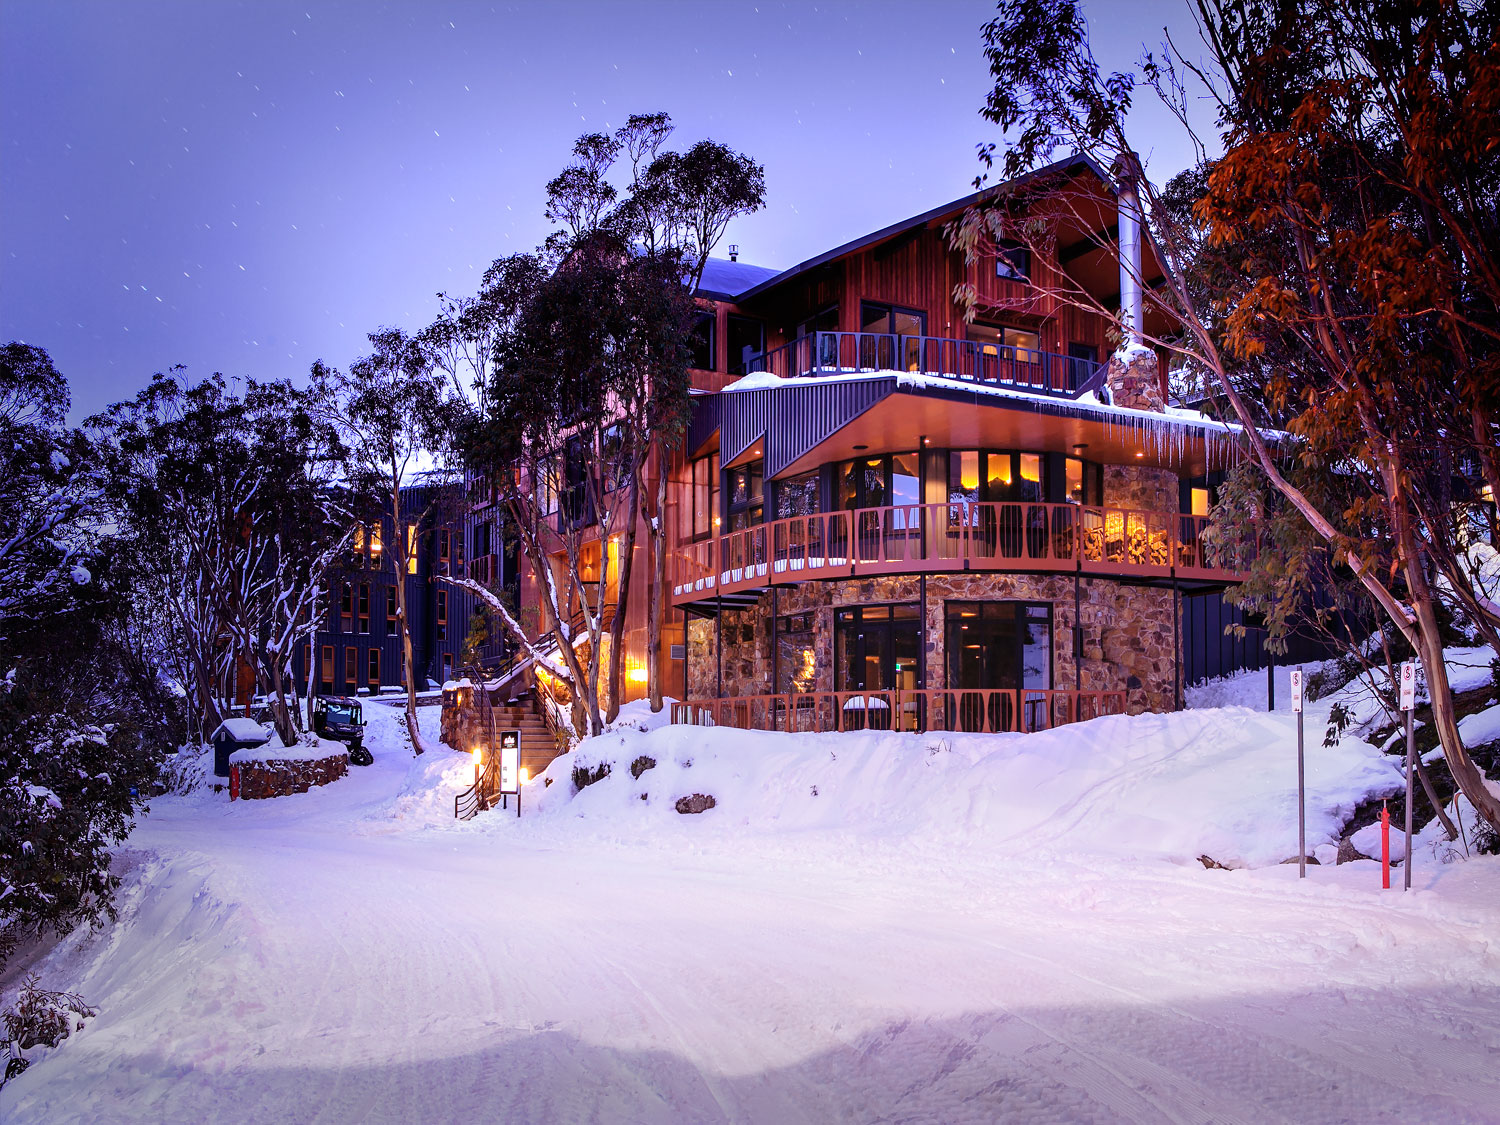 ski lodge in winter - photo #45